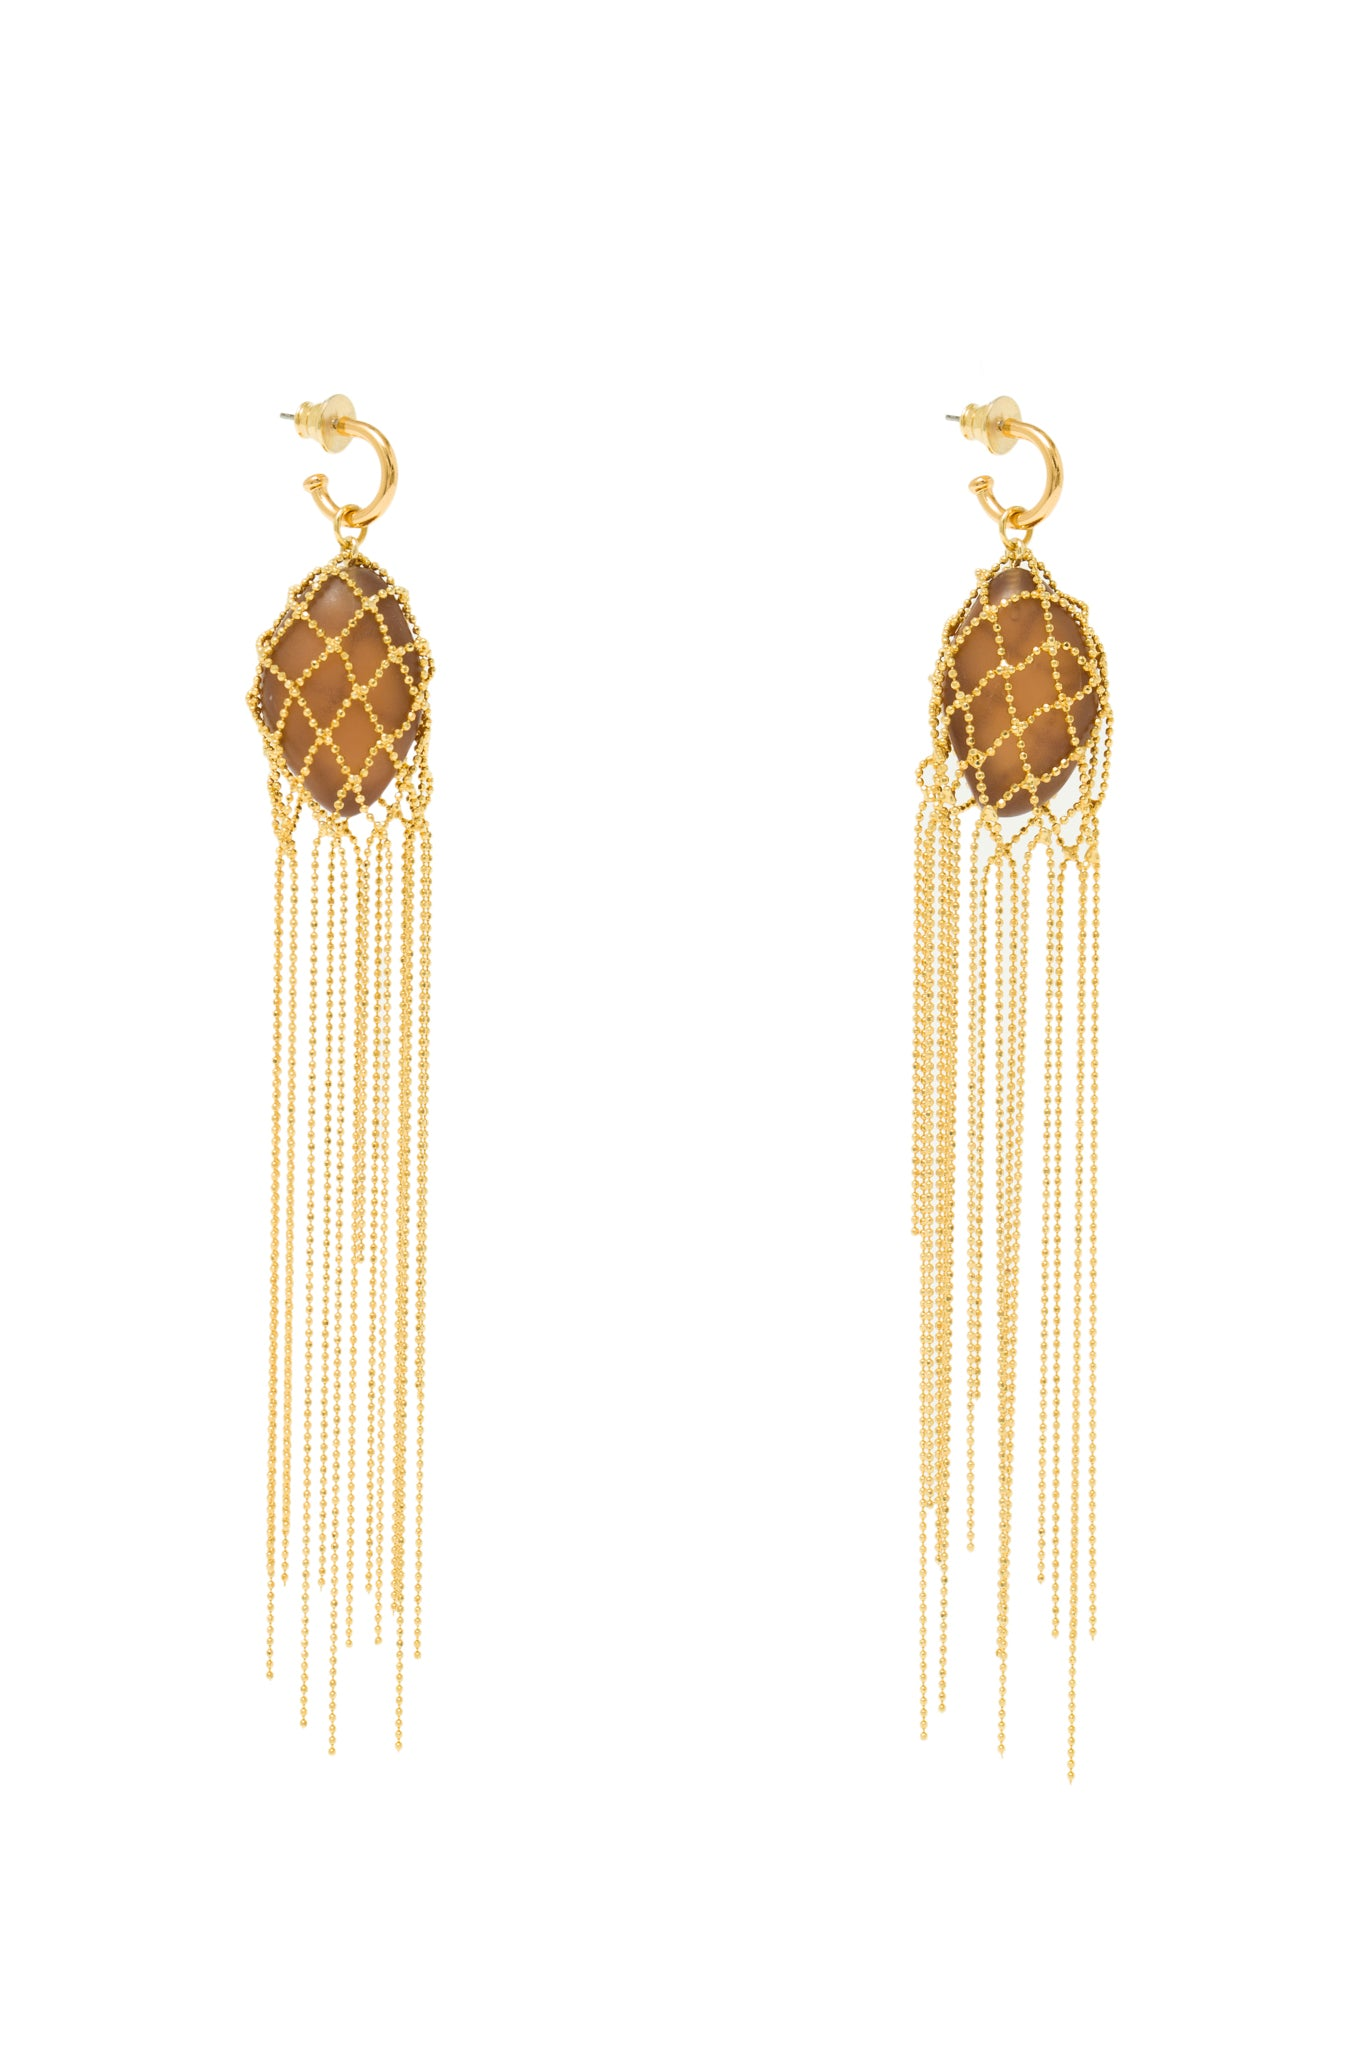 MEDUZA EARRINGS DARK BROWN